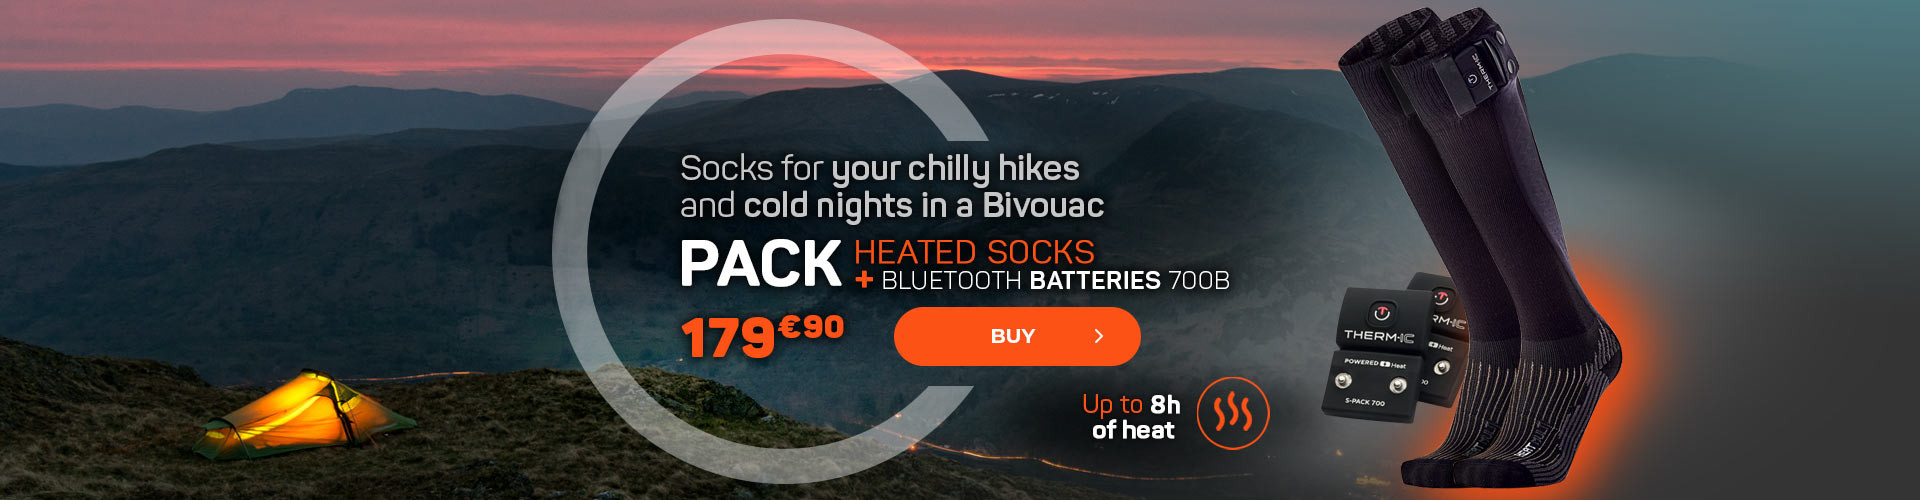 Socks for your chilly hikes and cold nights in a Bivouac